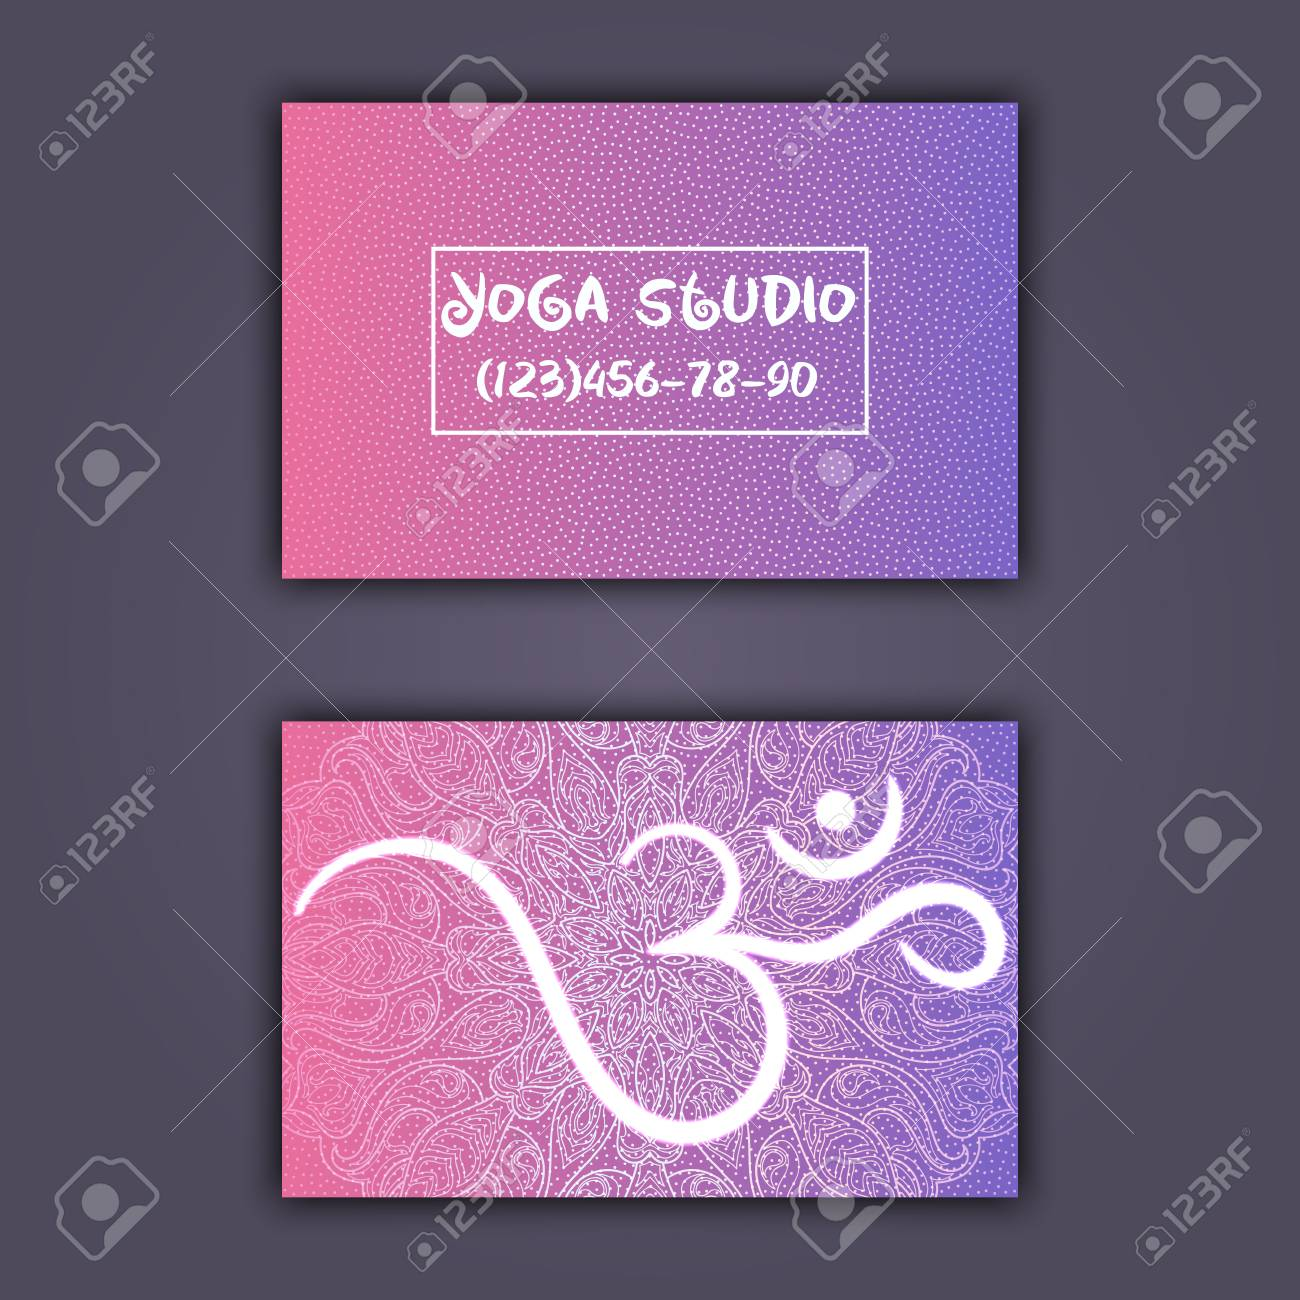 Business card for yoga studio or yoga instructor ethnic background business card for yoga studio or yoga instructor ethnic background with mandala ornament and ohm reheart Images